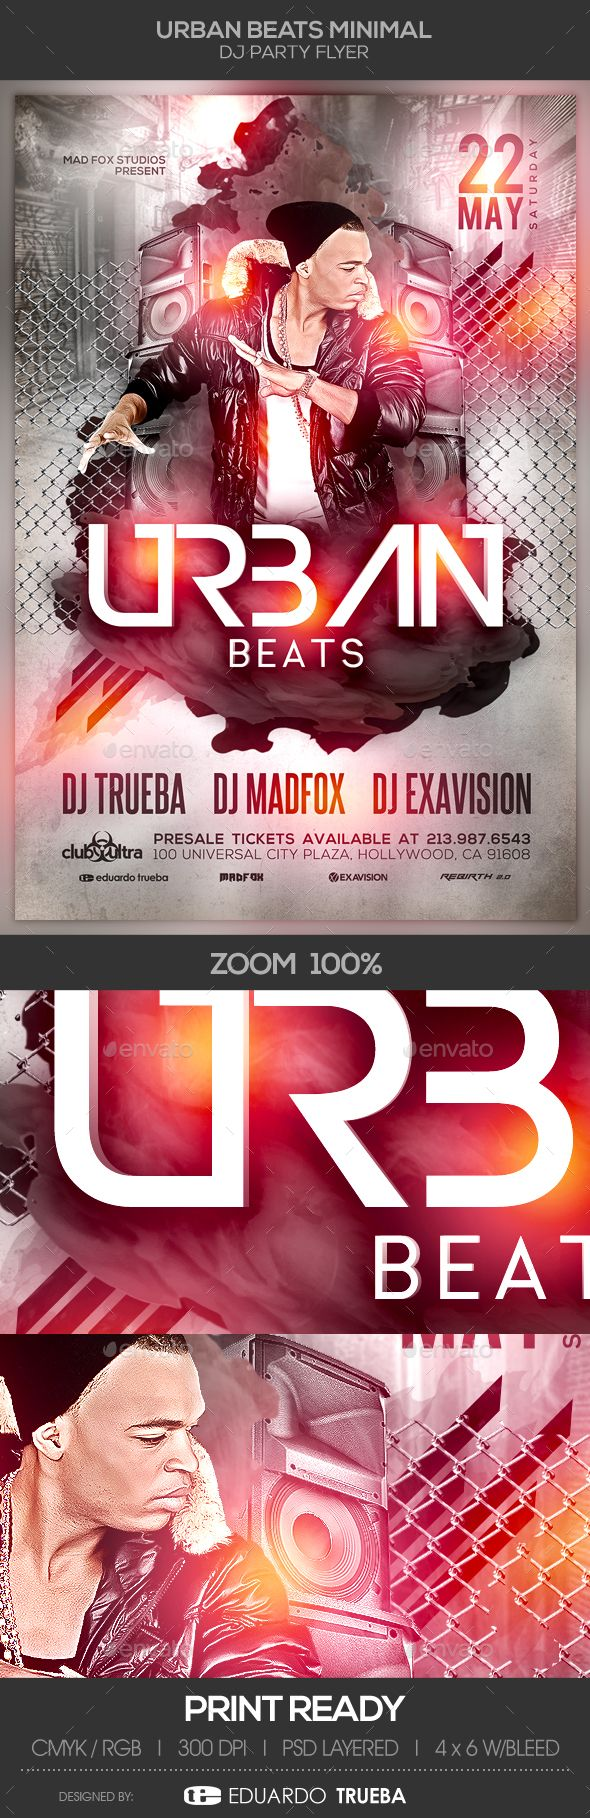 Urban Beats Minimal Dj Party #Flyer - Clubs & Parties Events